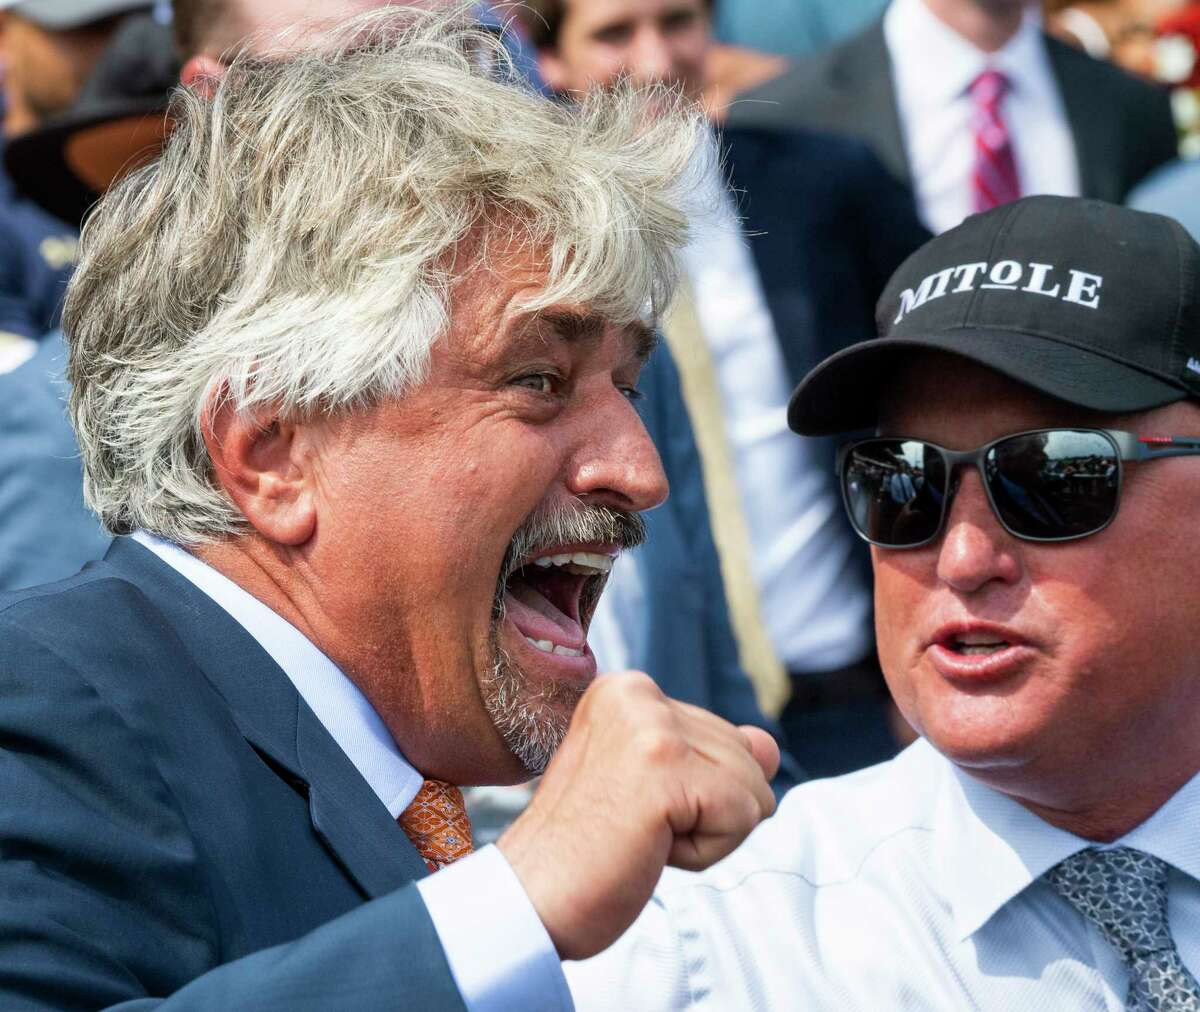 Trainer Steve Asmussen set a record for career wins during the Saratoga Race Course meet on Aug. 7, 2021. As a result of a U.S. Department of Labor investigation, Asmussen must pay $610,000 in back pay and penalties after it was found that he underpaid 170 employees at Saratoga and Belmont.